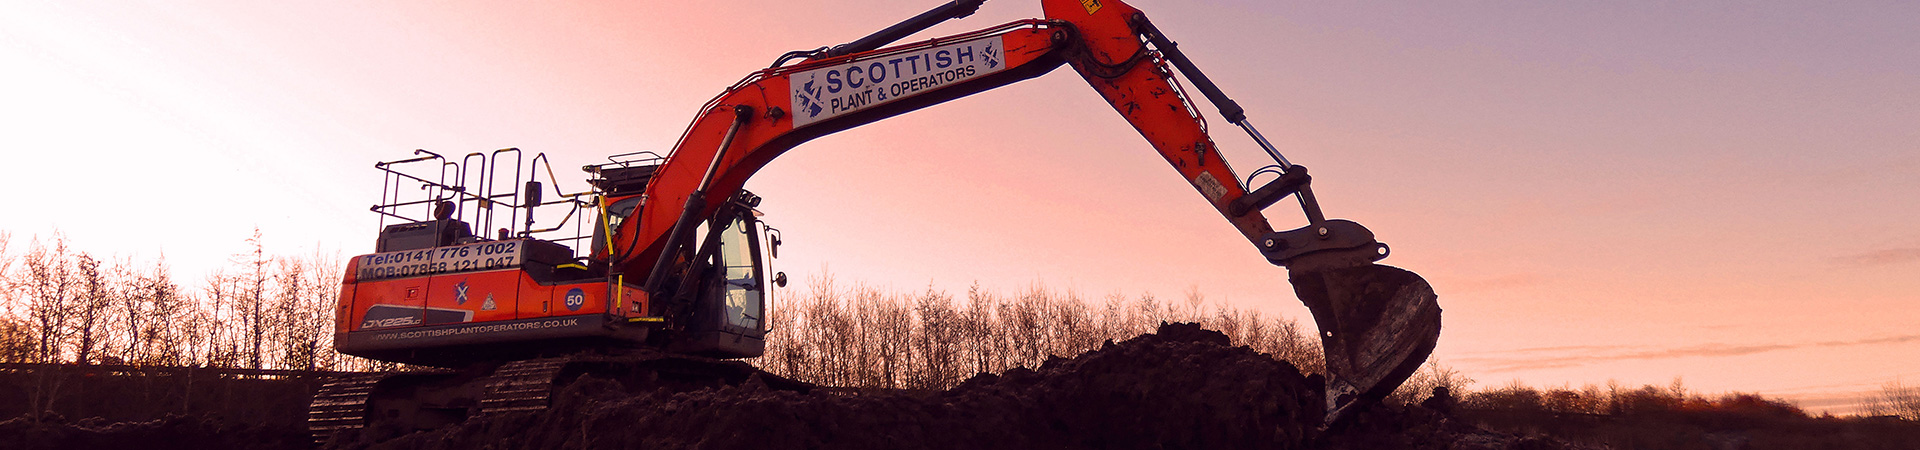 Scottish Plant & Operators